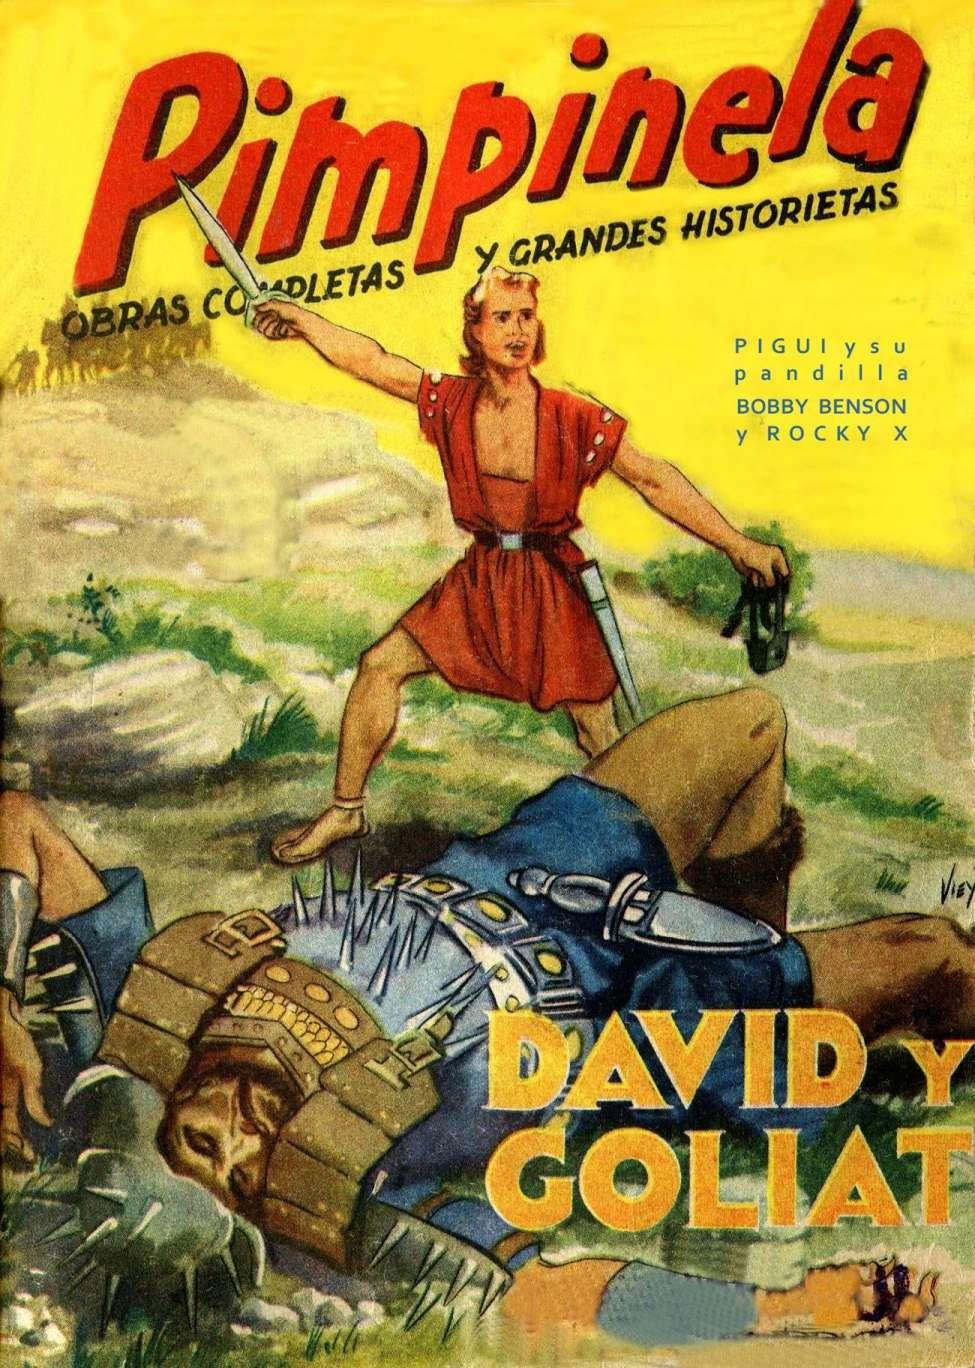 Comic Book Cover For Pimpinela 27 - David y Goliat